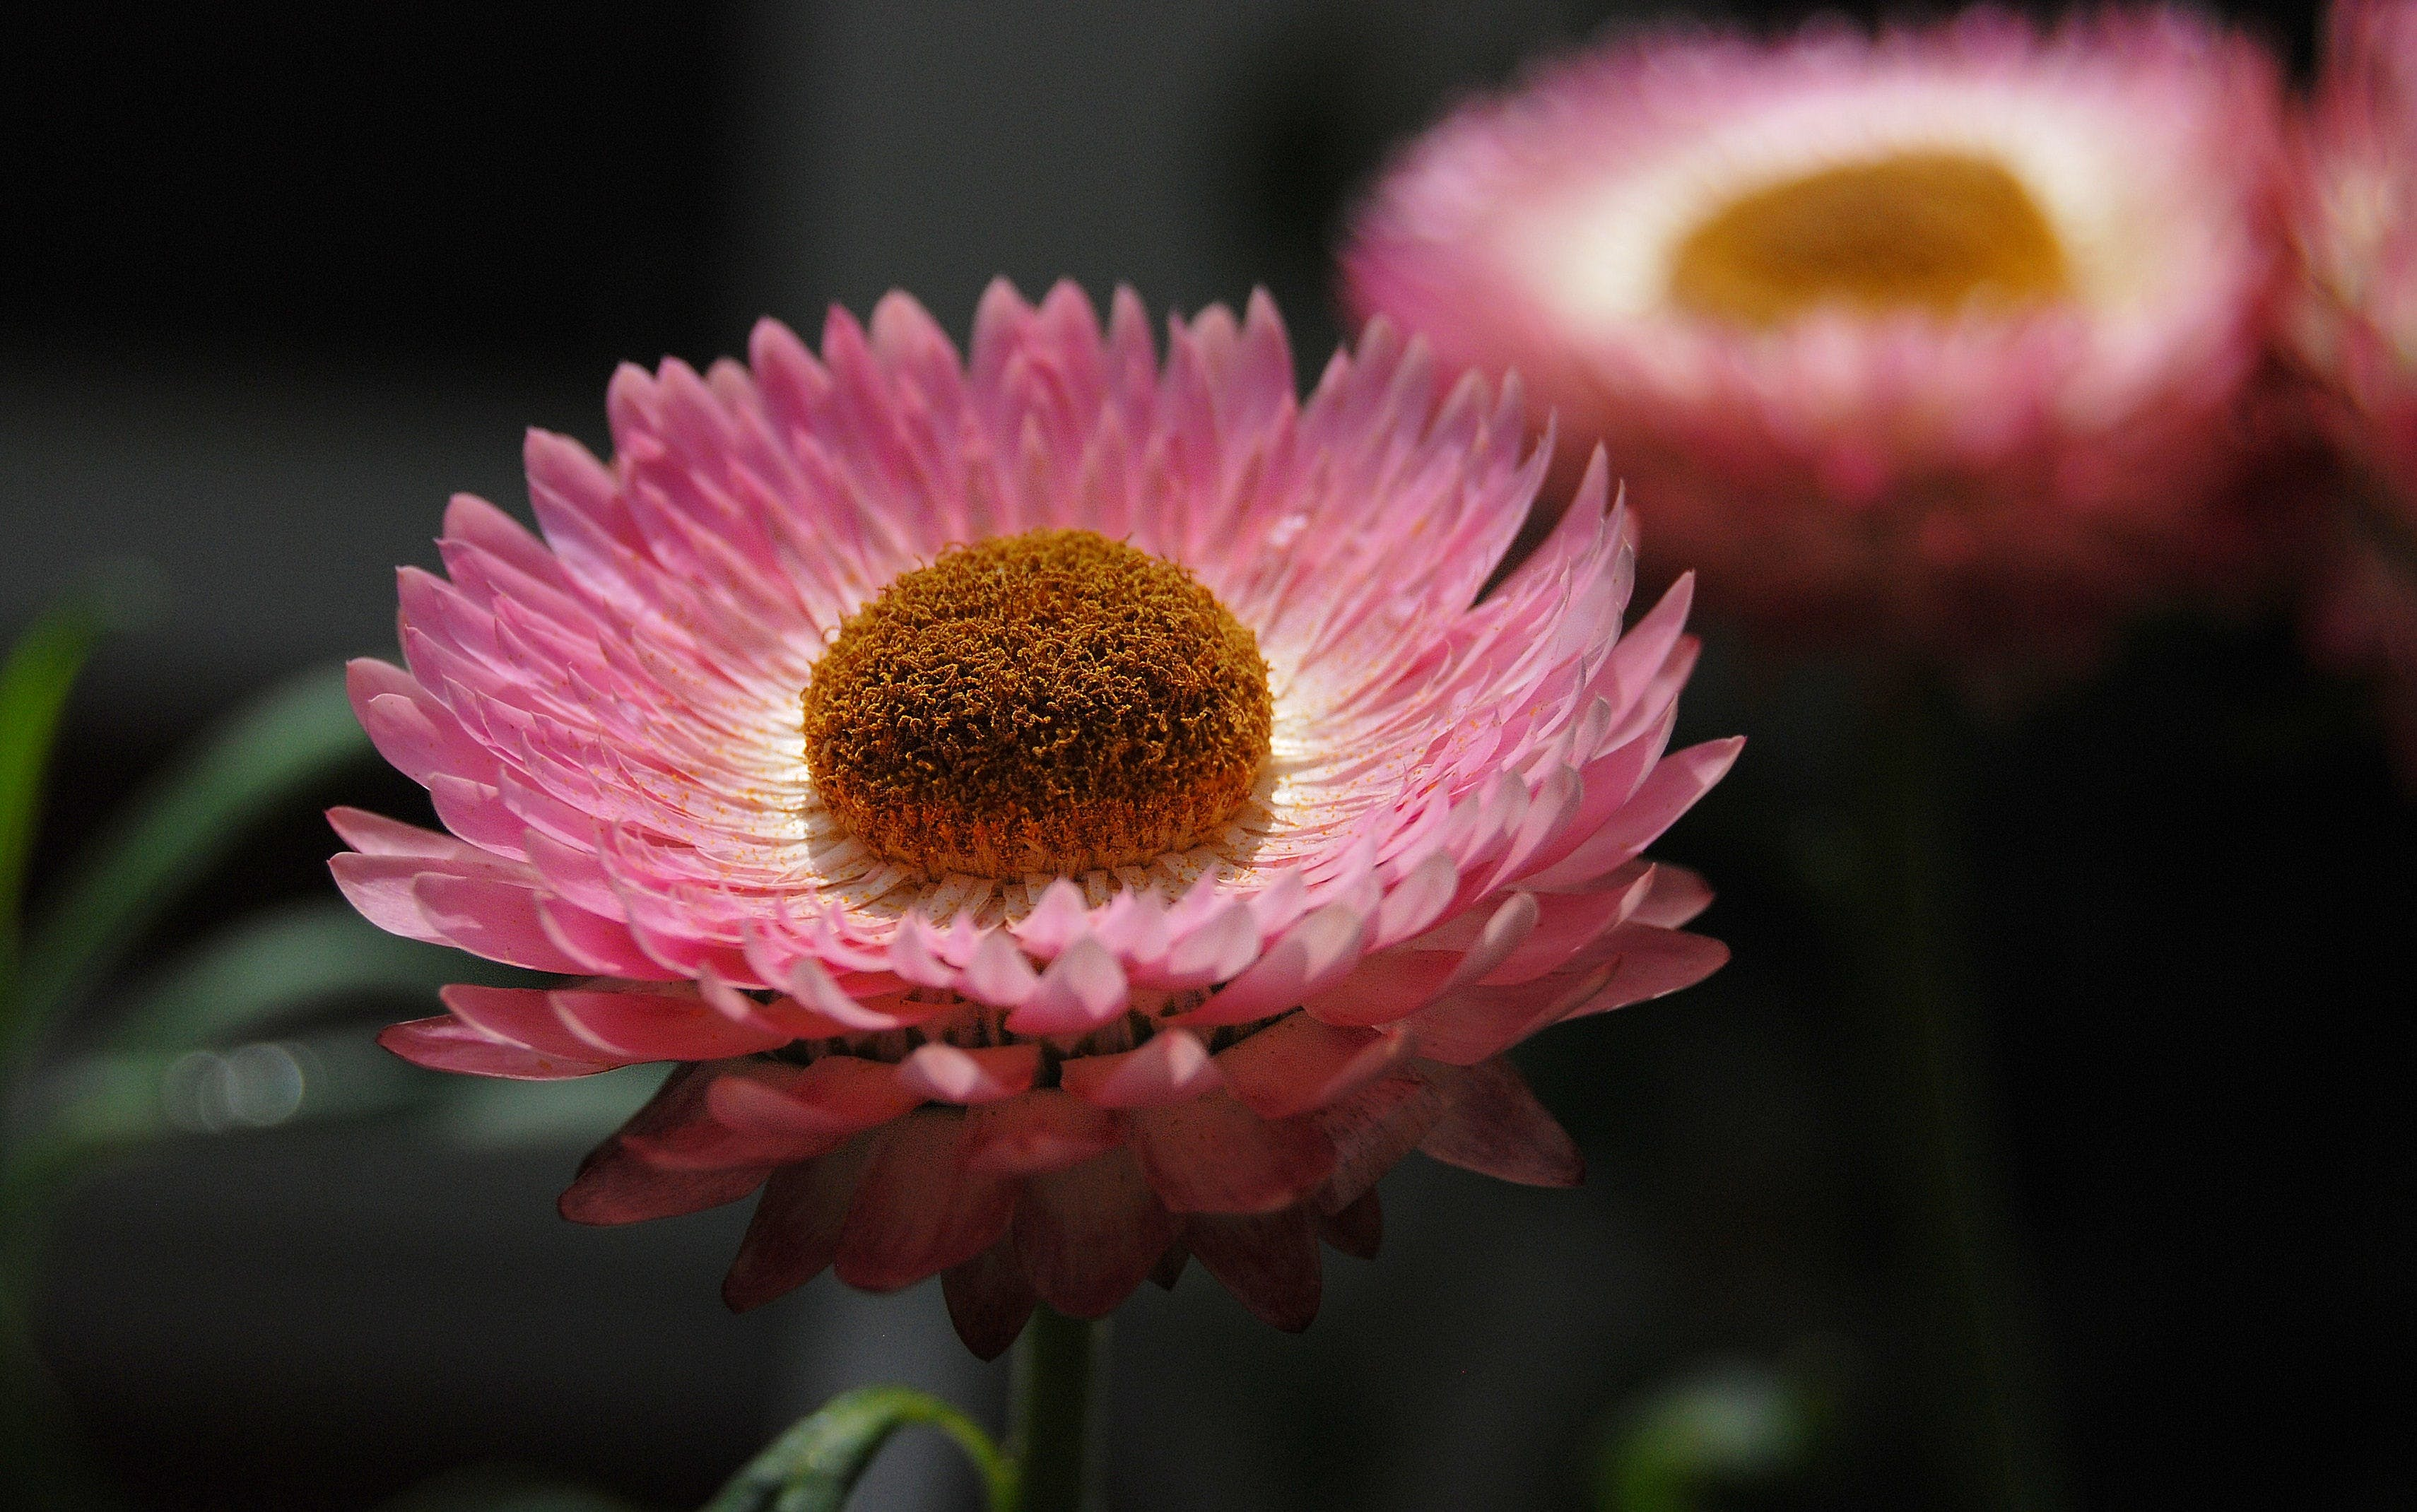 Pink and White Multi Layer Petal Flower